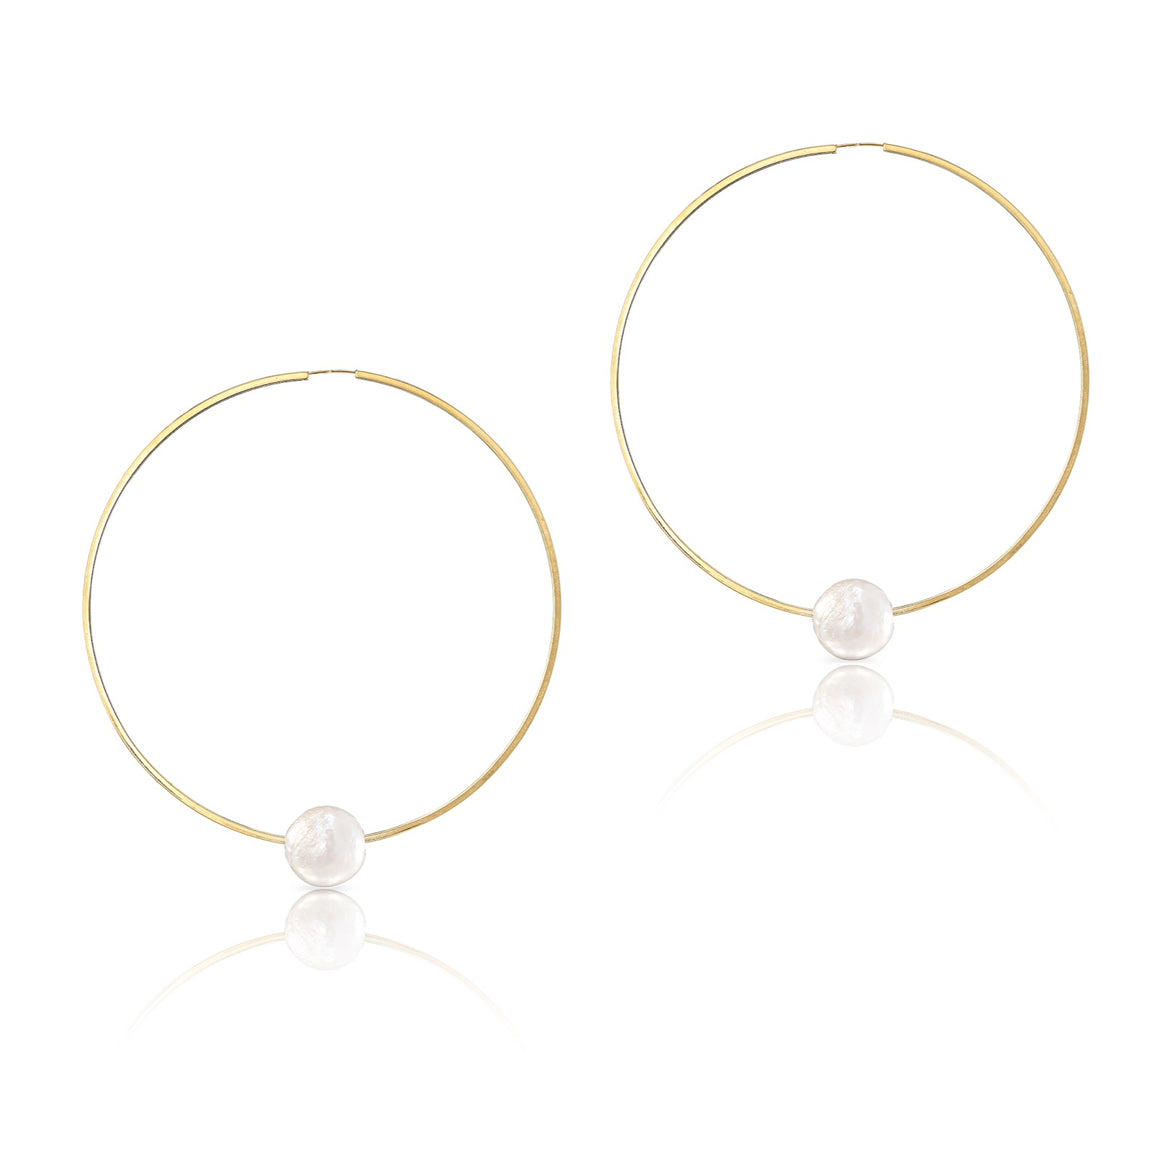 XXL 14K Yellow Gold Floating Pearl Geometric Hoop Earrings